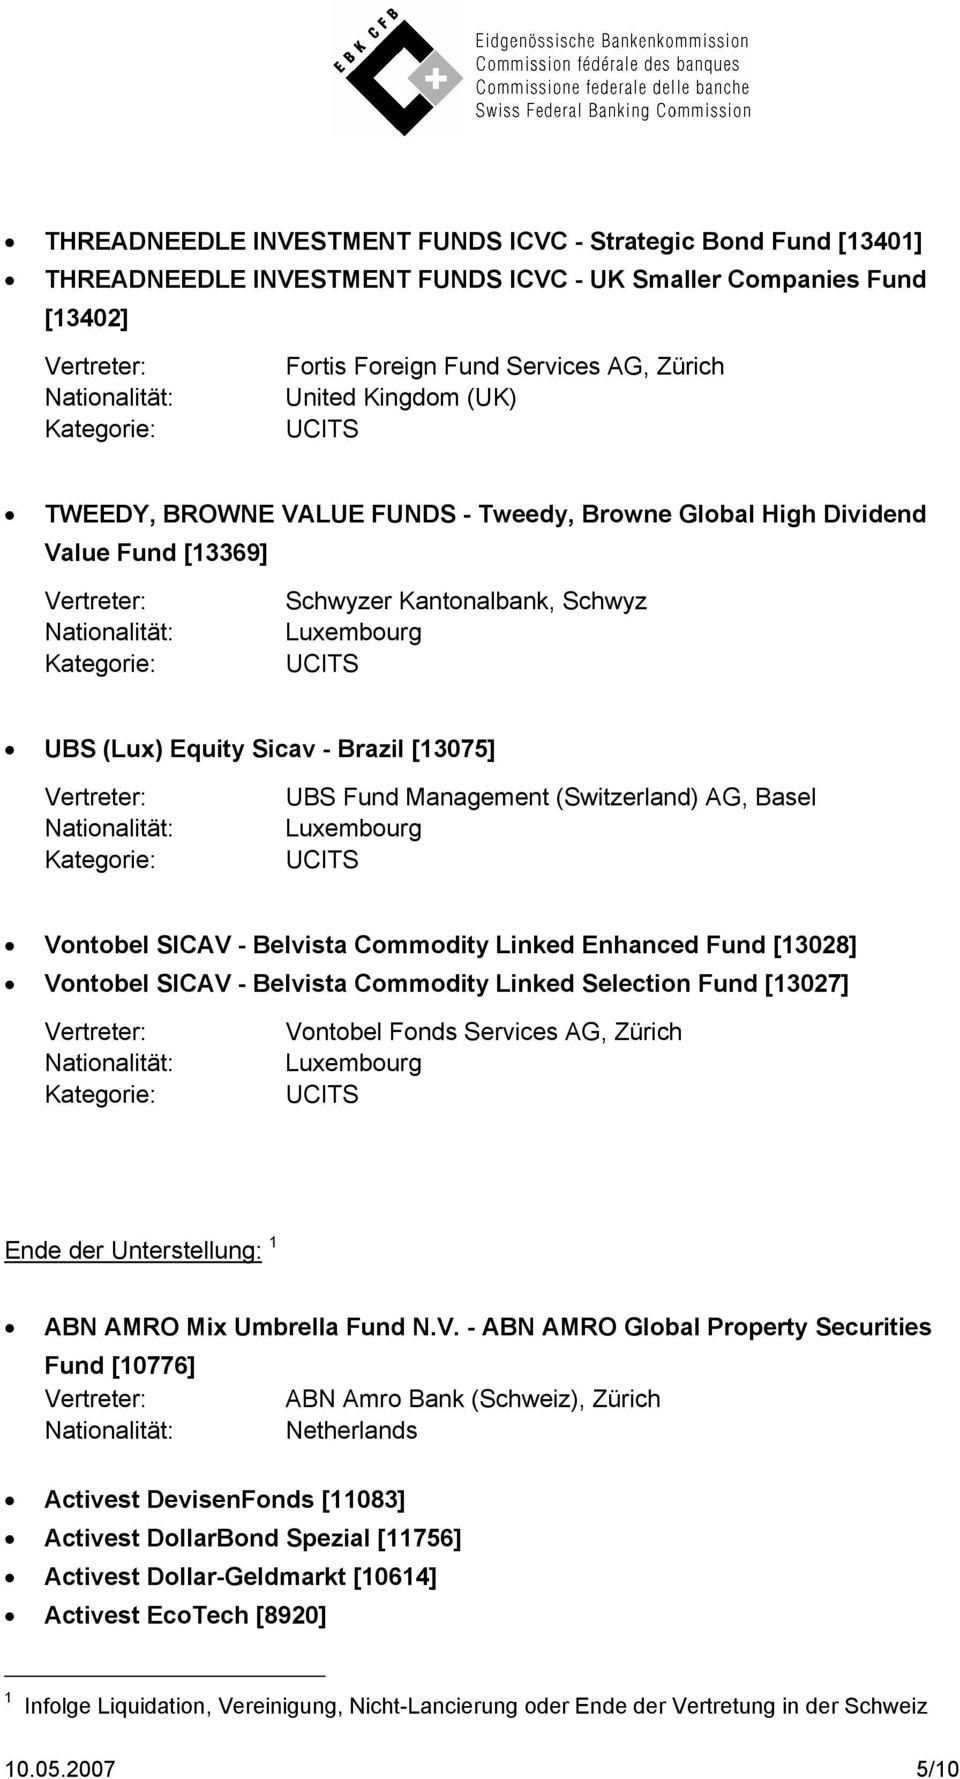 Vontobel SICAV - Belvista Commodity Linked Enhanced Fund [13028] Vontobel SICAV - Belvista Commodity Linked Selection Fund [13027] Vontobel Fonds Services AG, Zürich Ende der Unterstellung: 1 ABN